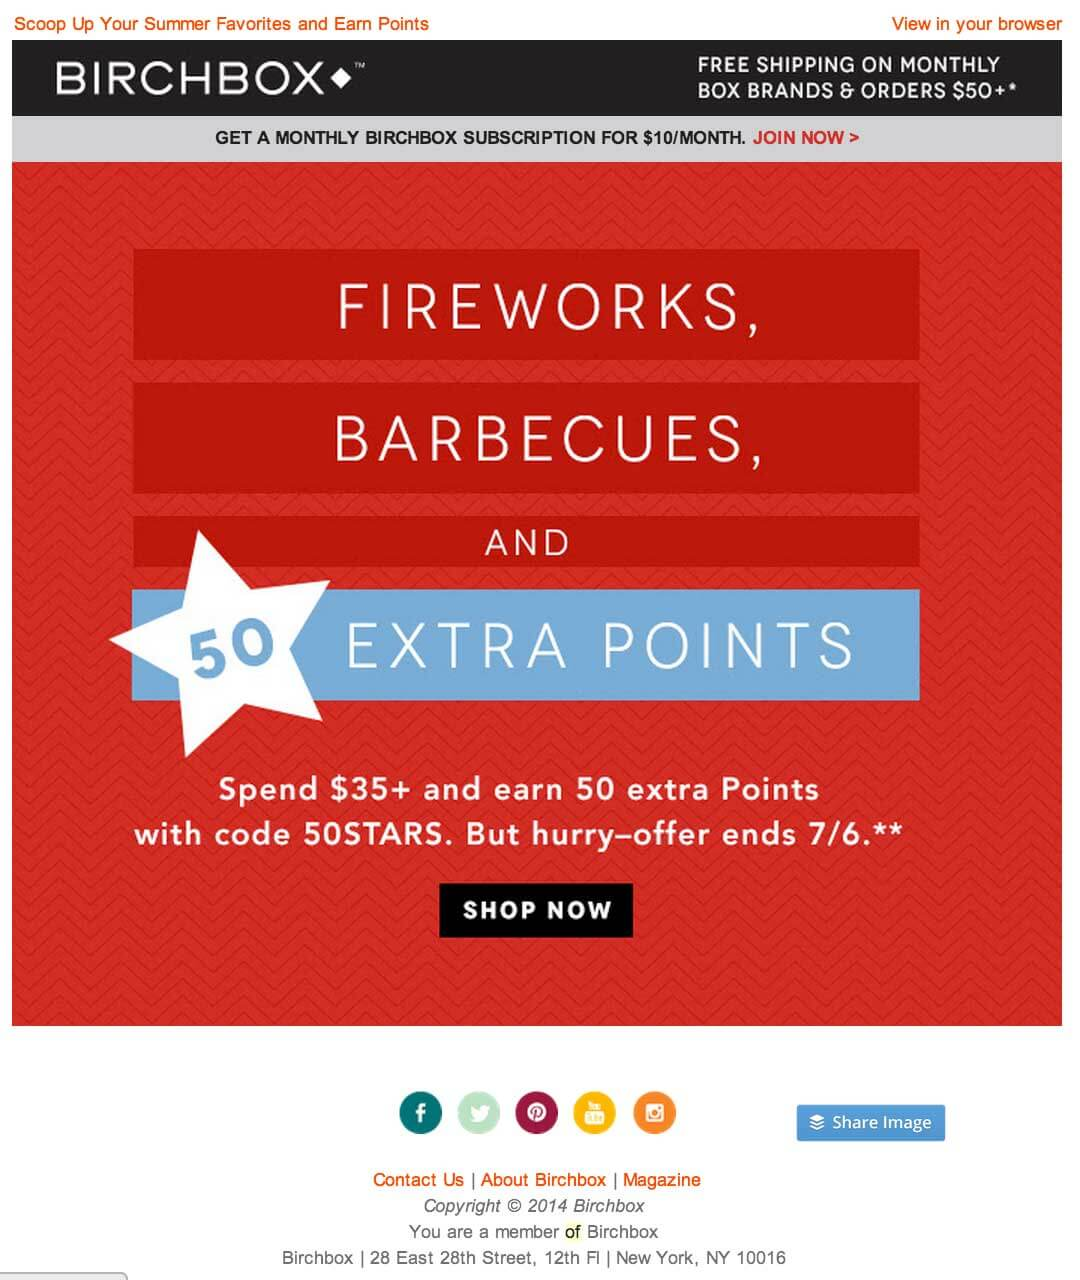 Birchbox independence day email